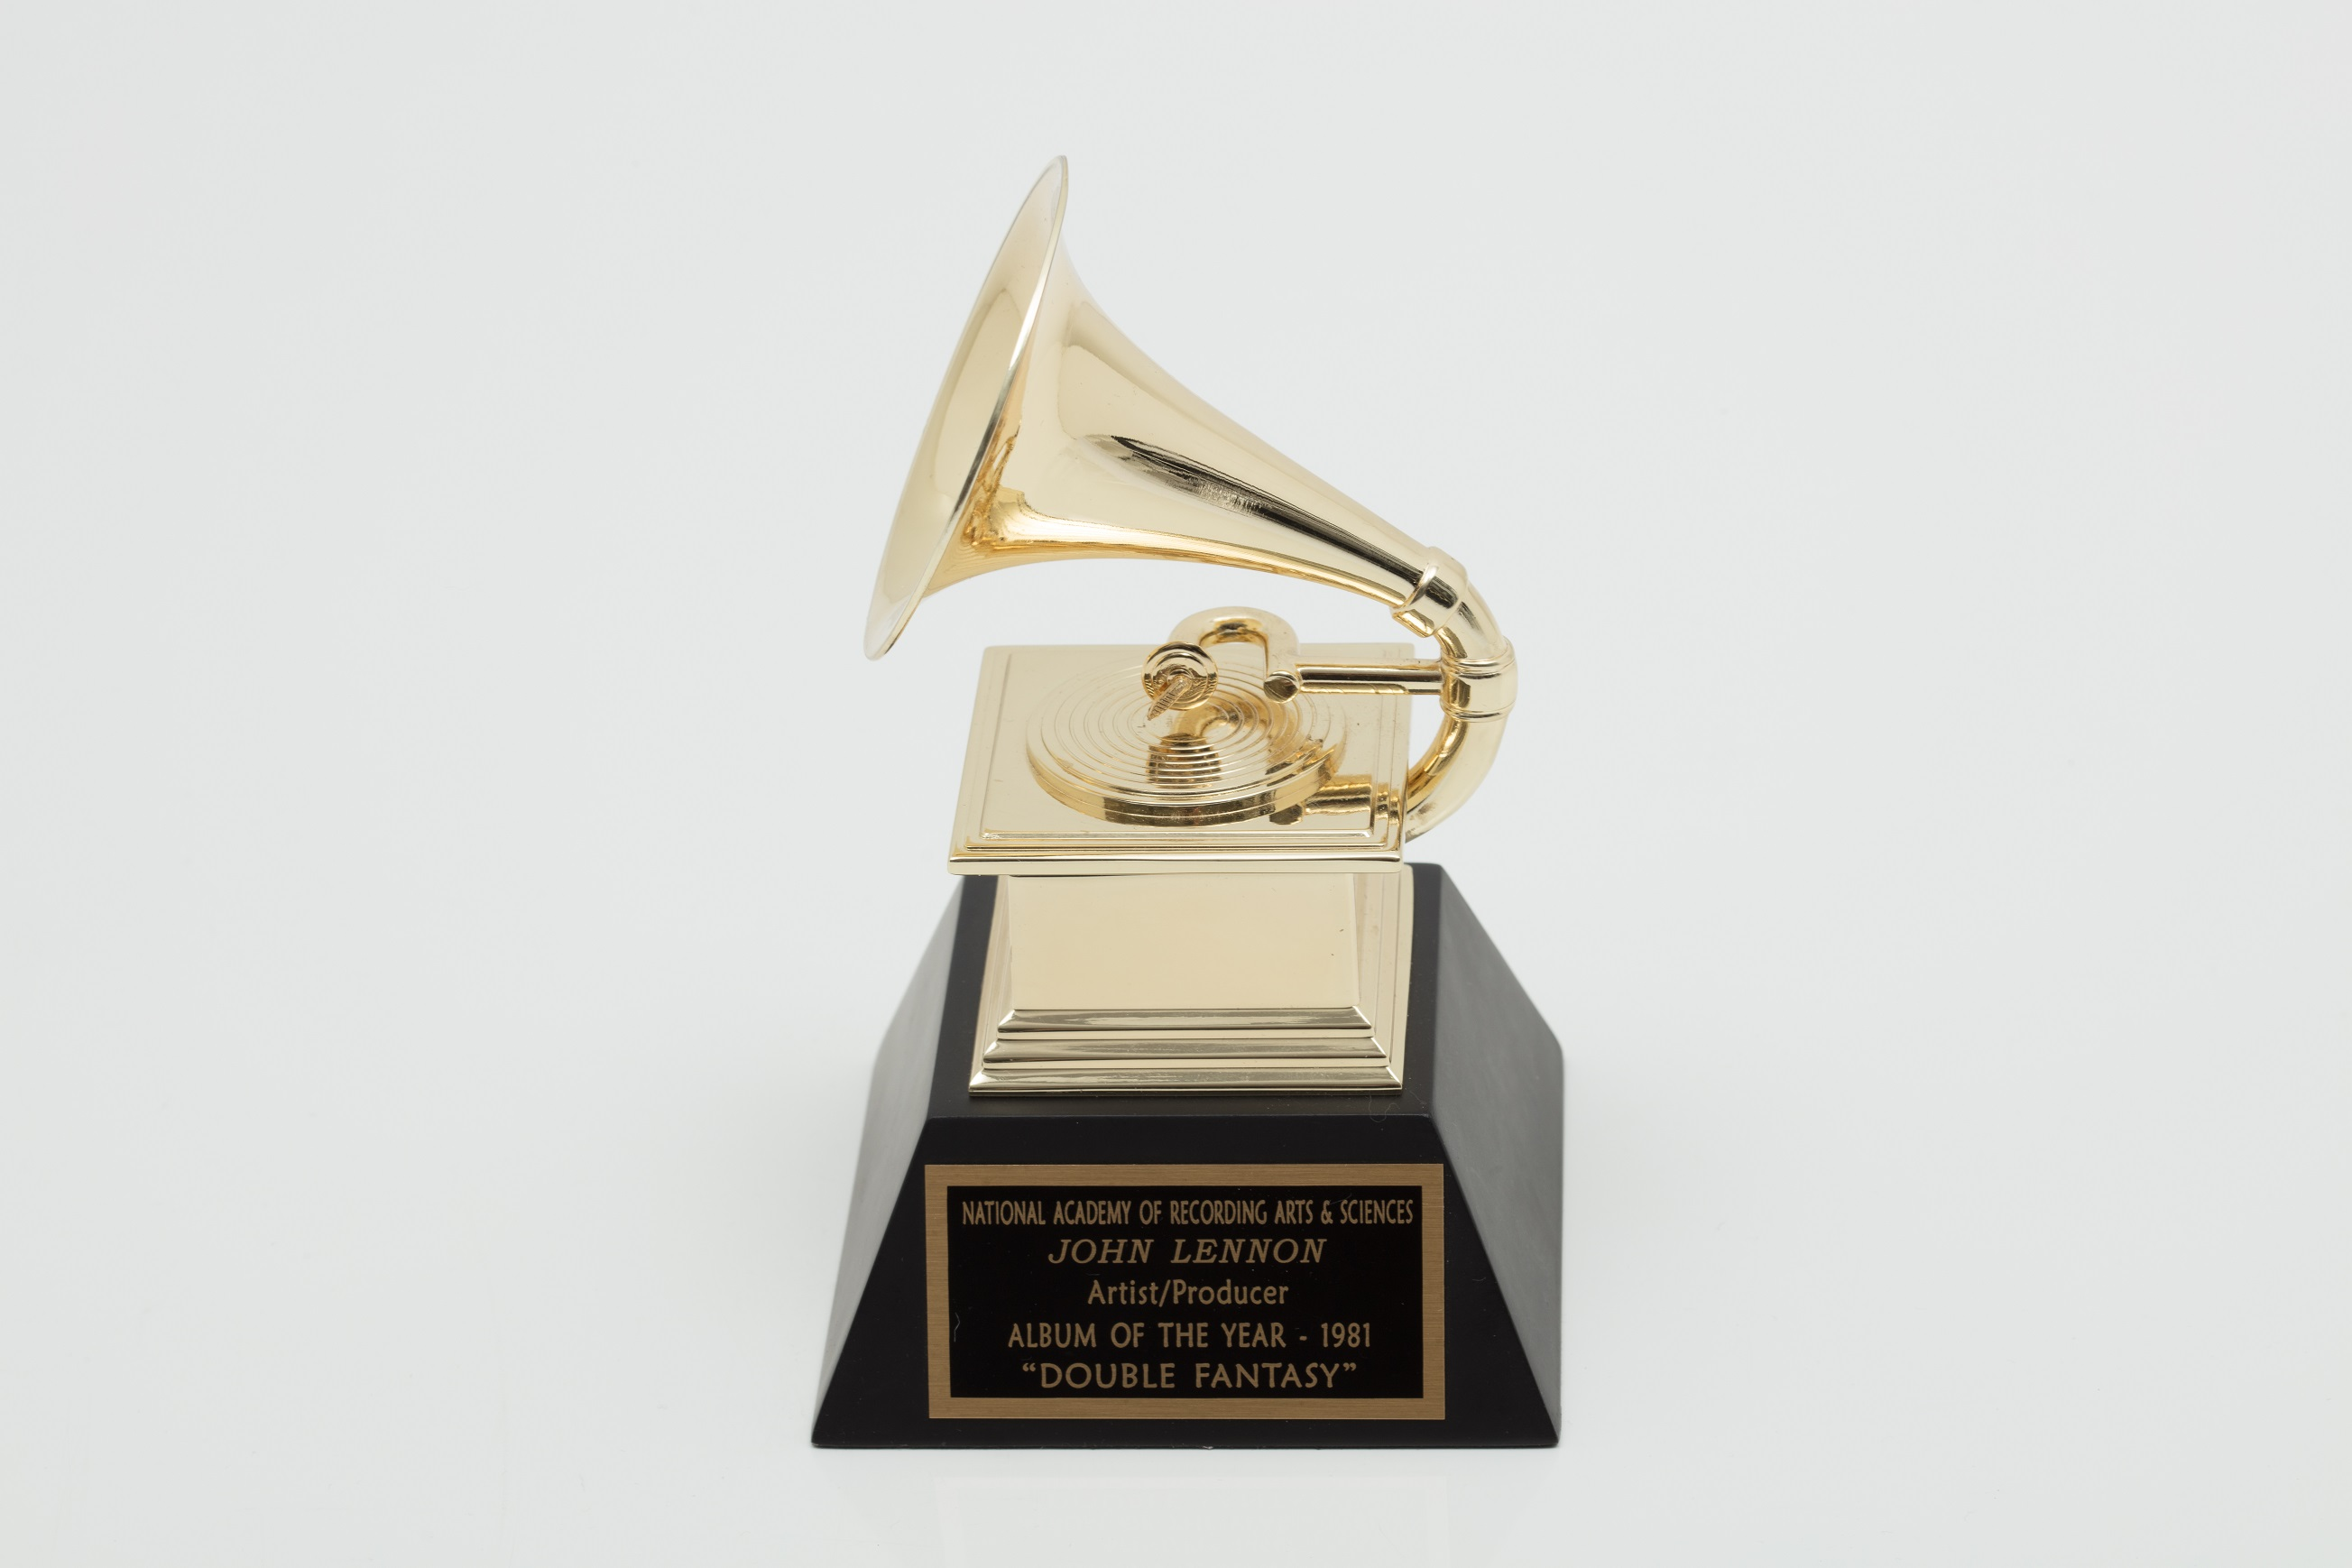 Grammy Award, 1981